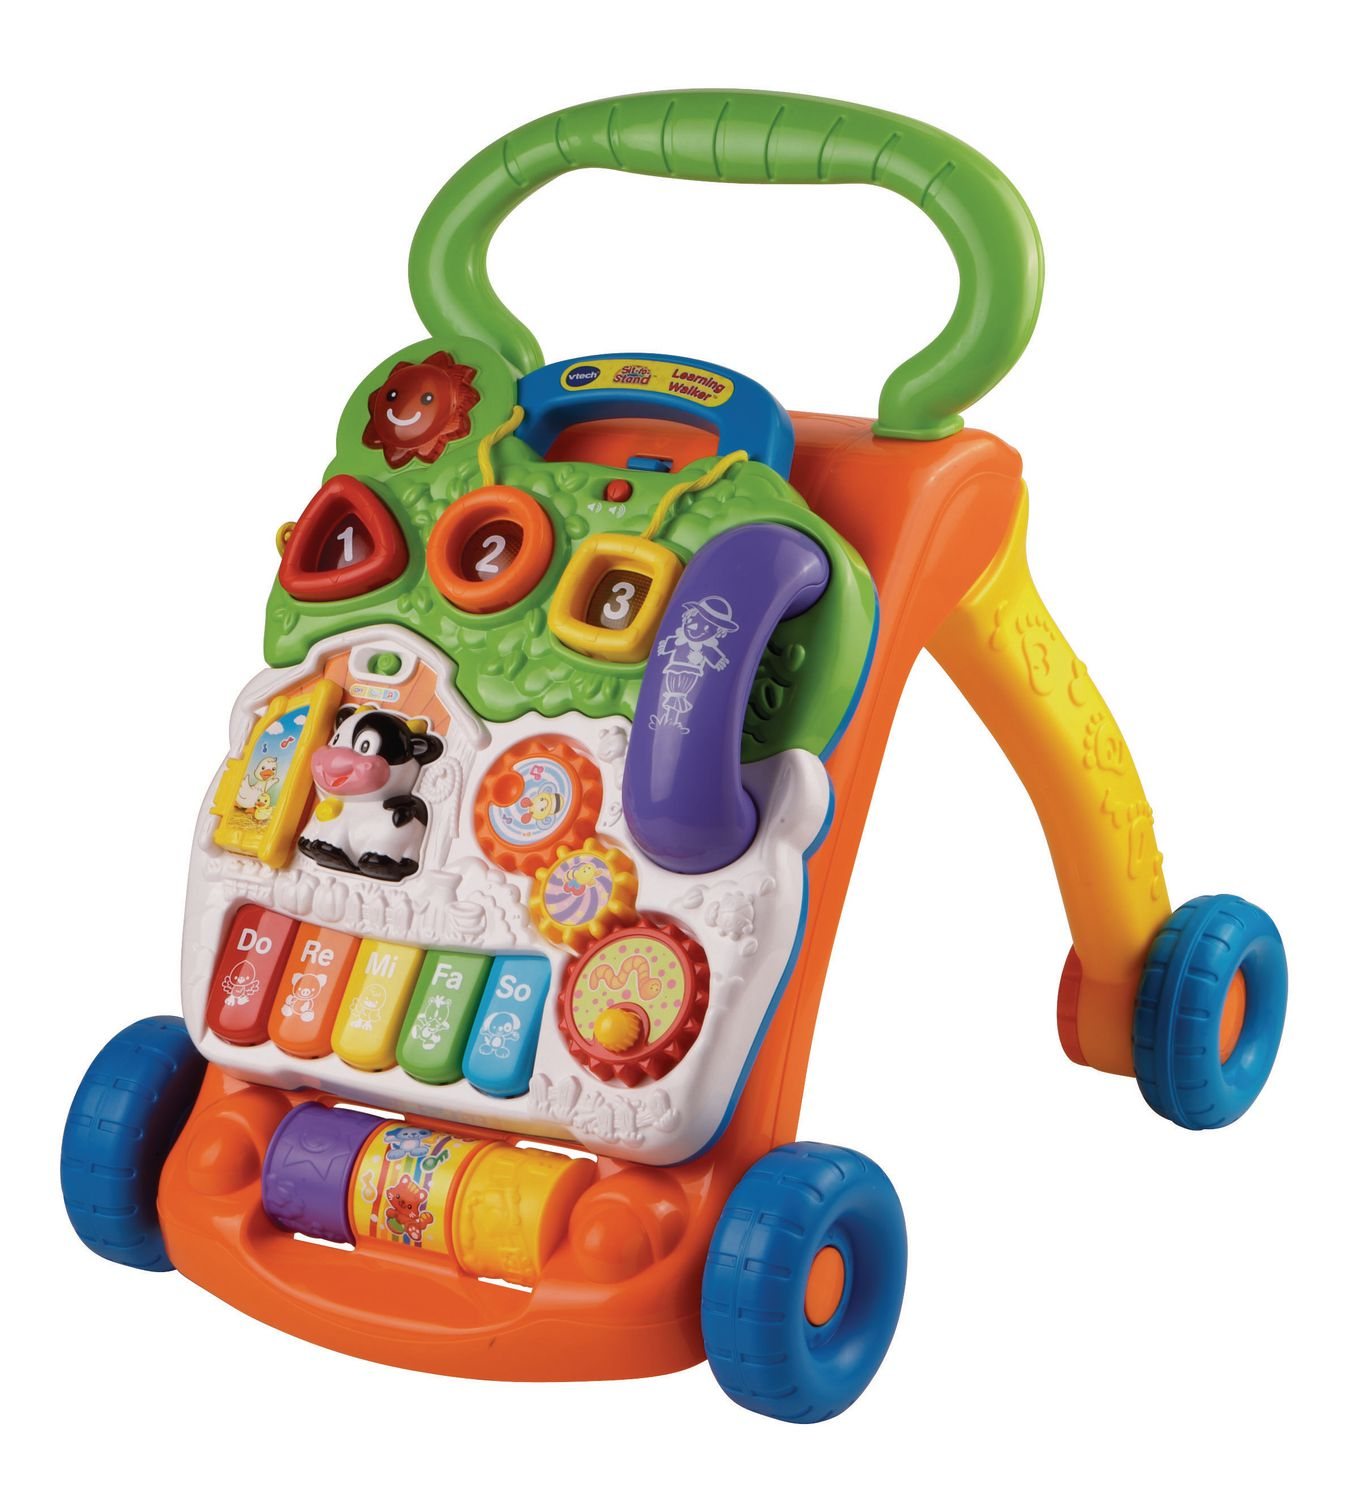 VTech Sit to Stand Learning Walker Toy English